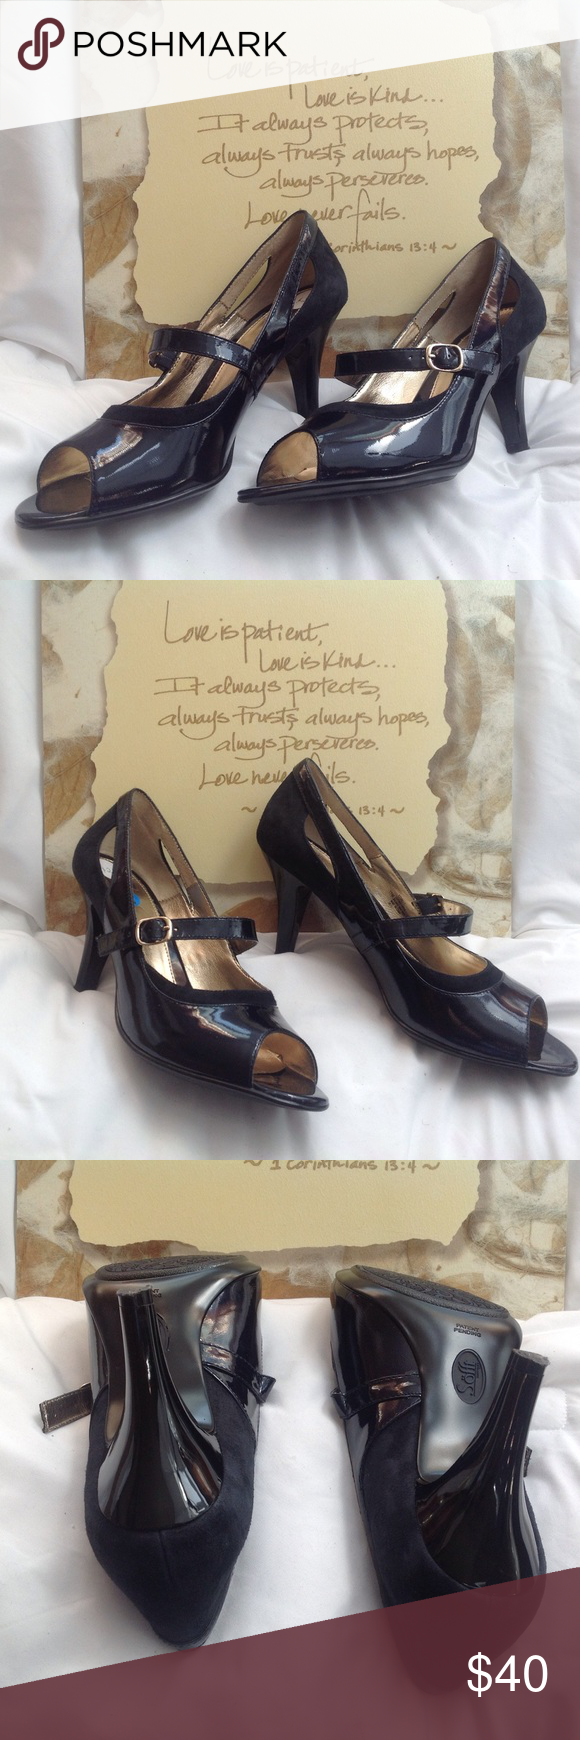 "Sofft Women's Navy Leather Open Toe Shoes 11M NWOT Sofft women's, navy, leather, open-toe shoes with 3 1/2"" heel. Has strap and key hole openings. NWOT. (S0218-005) Sofft Shoes Heels"